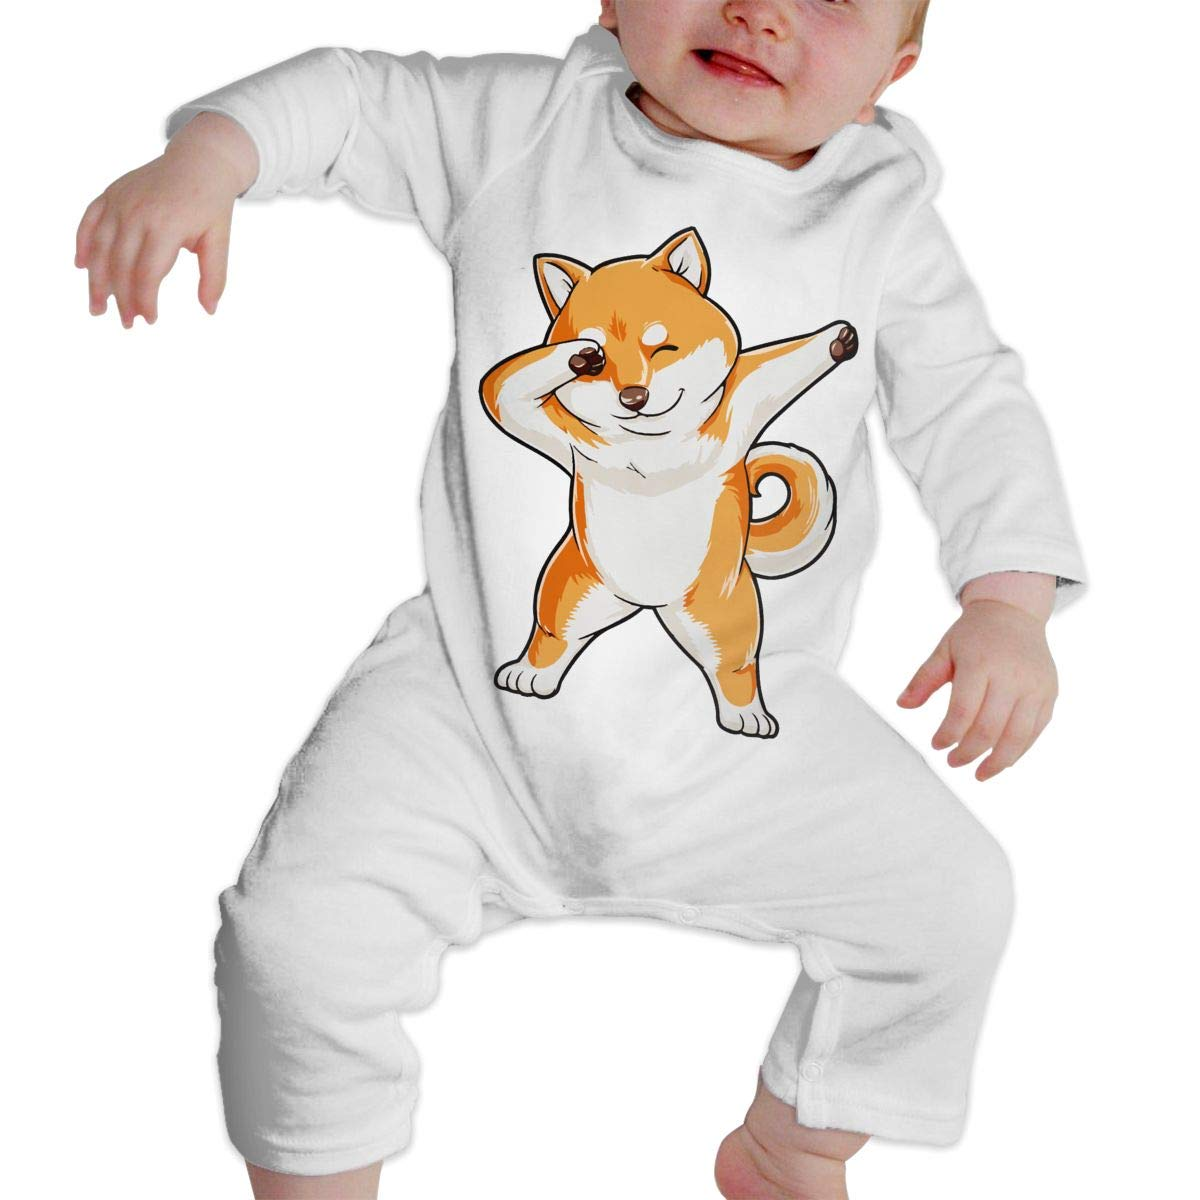 A1BY-5US Infant Babys Cotton Long Sleeve Dabbing Doge Shiba Inu Baby Clothes One-Piece Romper Clothes